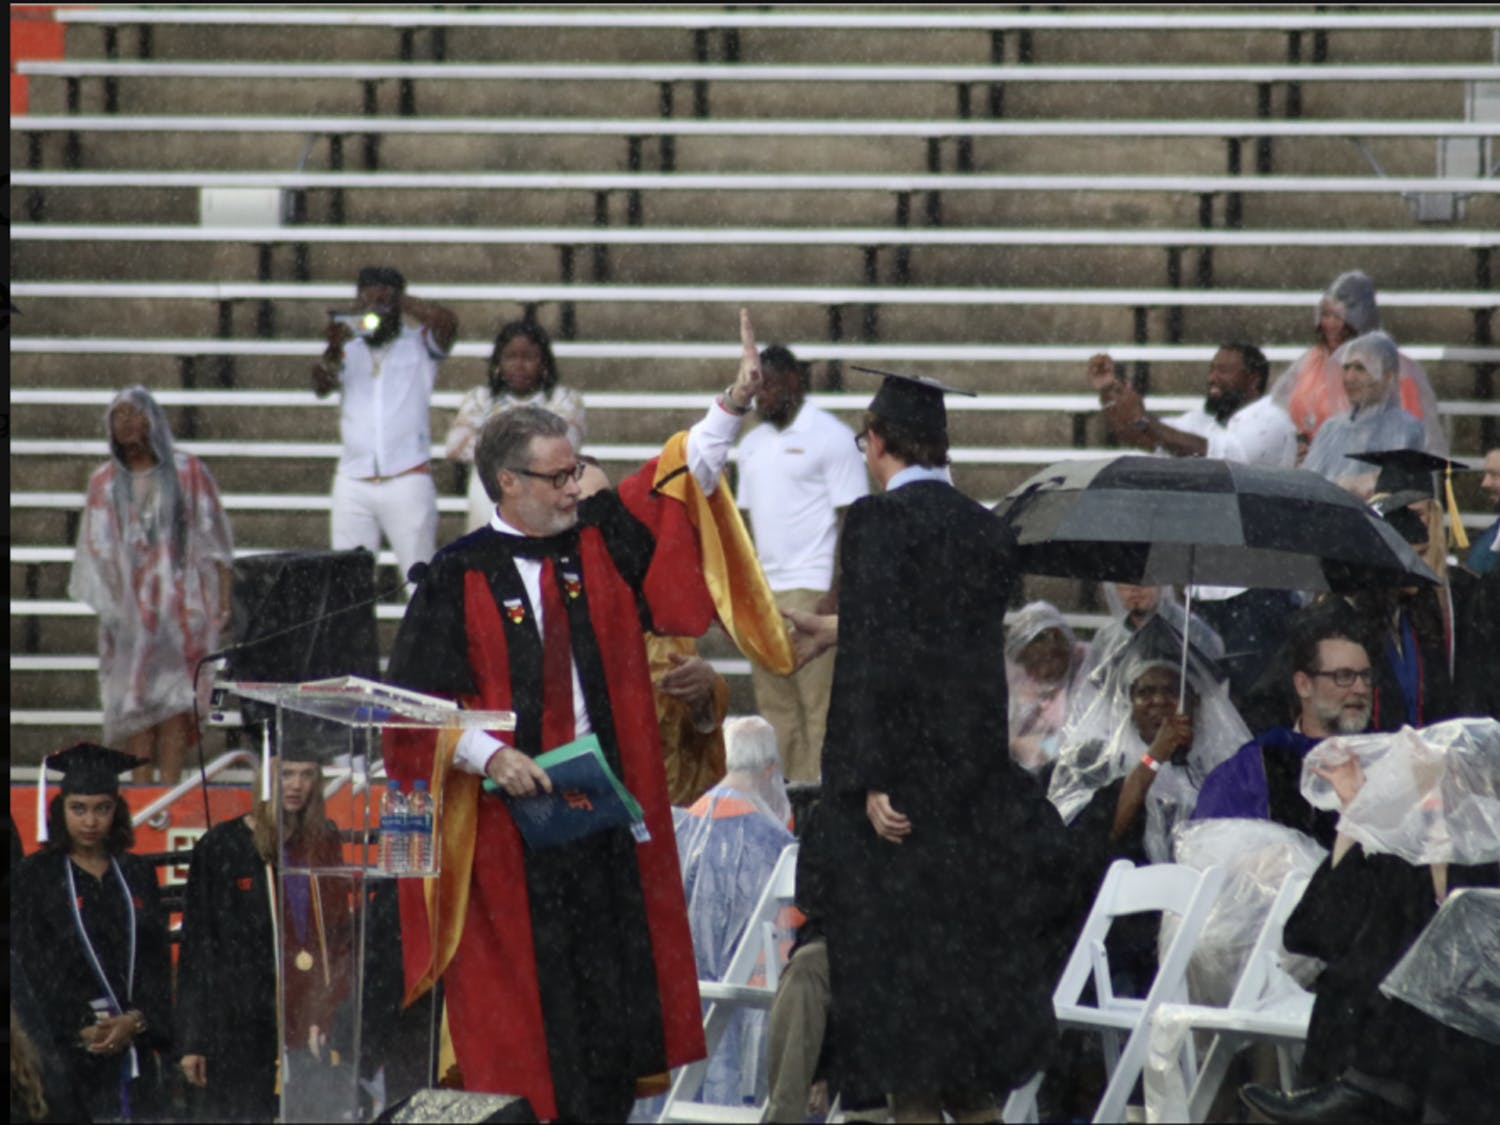 College of Liberal Arts and Sciences Dean, David Richardson, gestures to pause the commencement ceremony. Richardson announced the ceremony would be delayed by 30 minutes, but the ceremony was later moved to an inside hallway of the stadium.